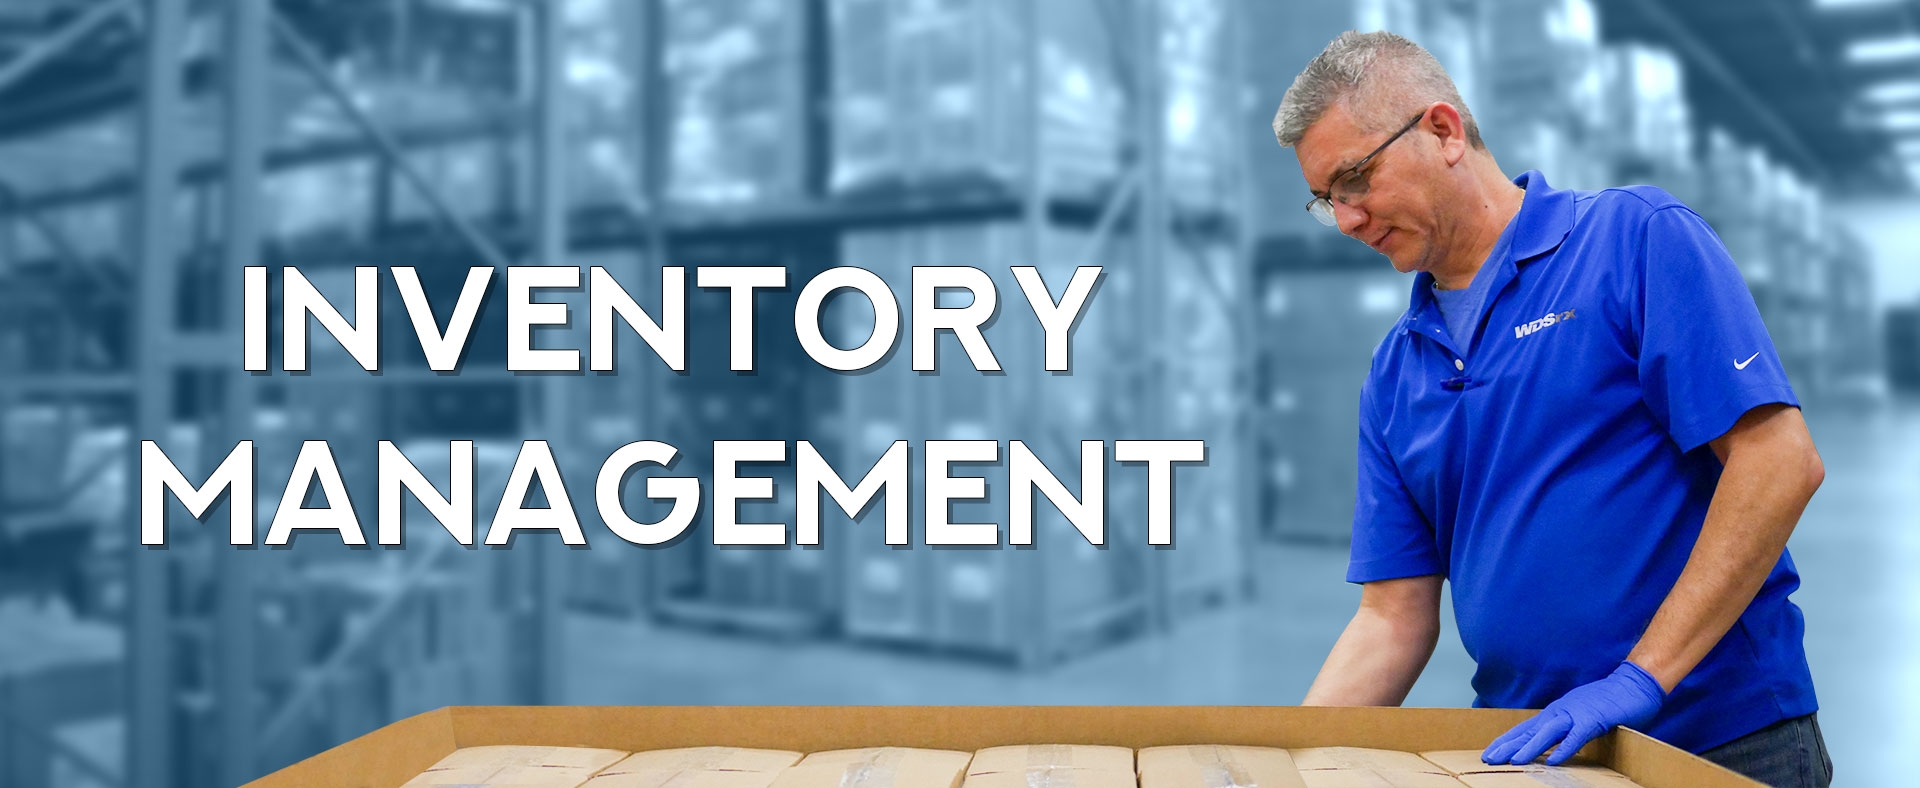 Inventory management covers the ins to outs of product and data management.